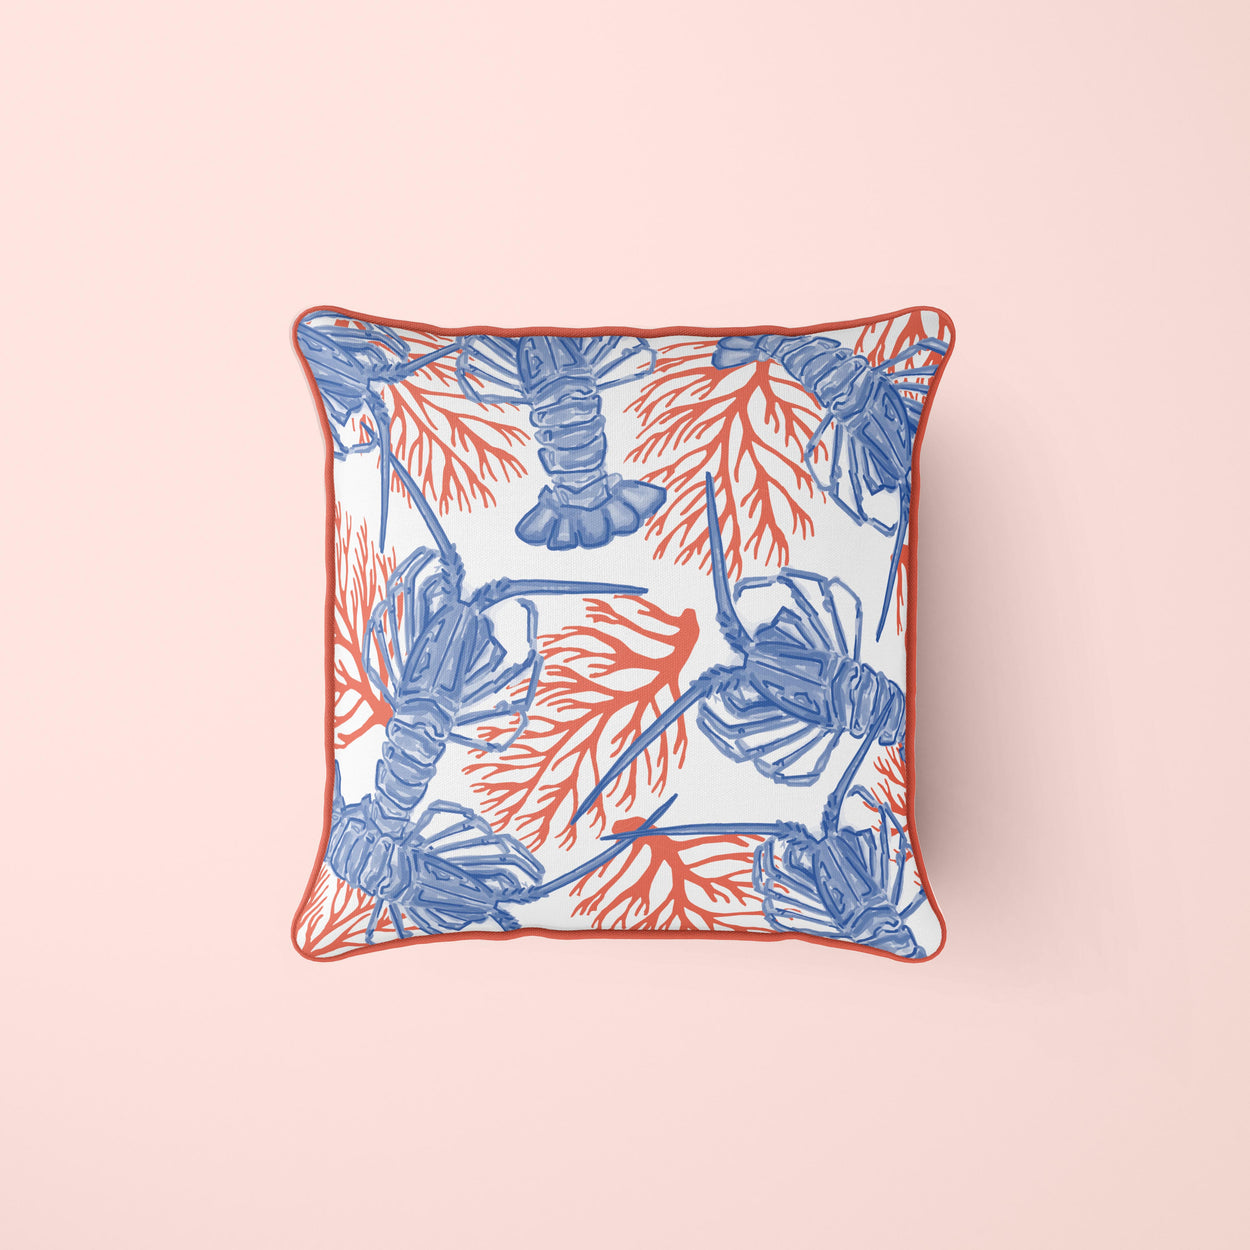 Bahamian Lobster & Coral Pillow Cover